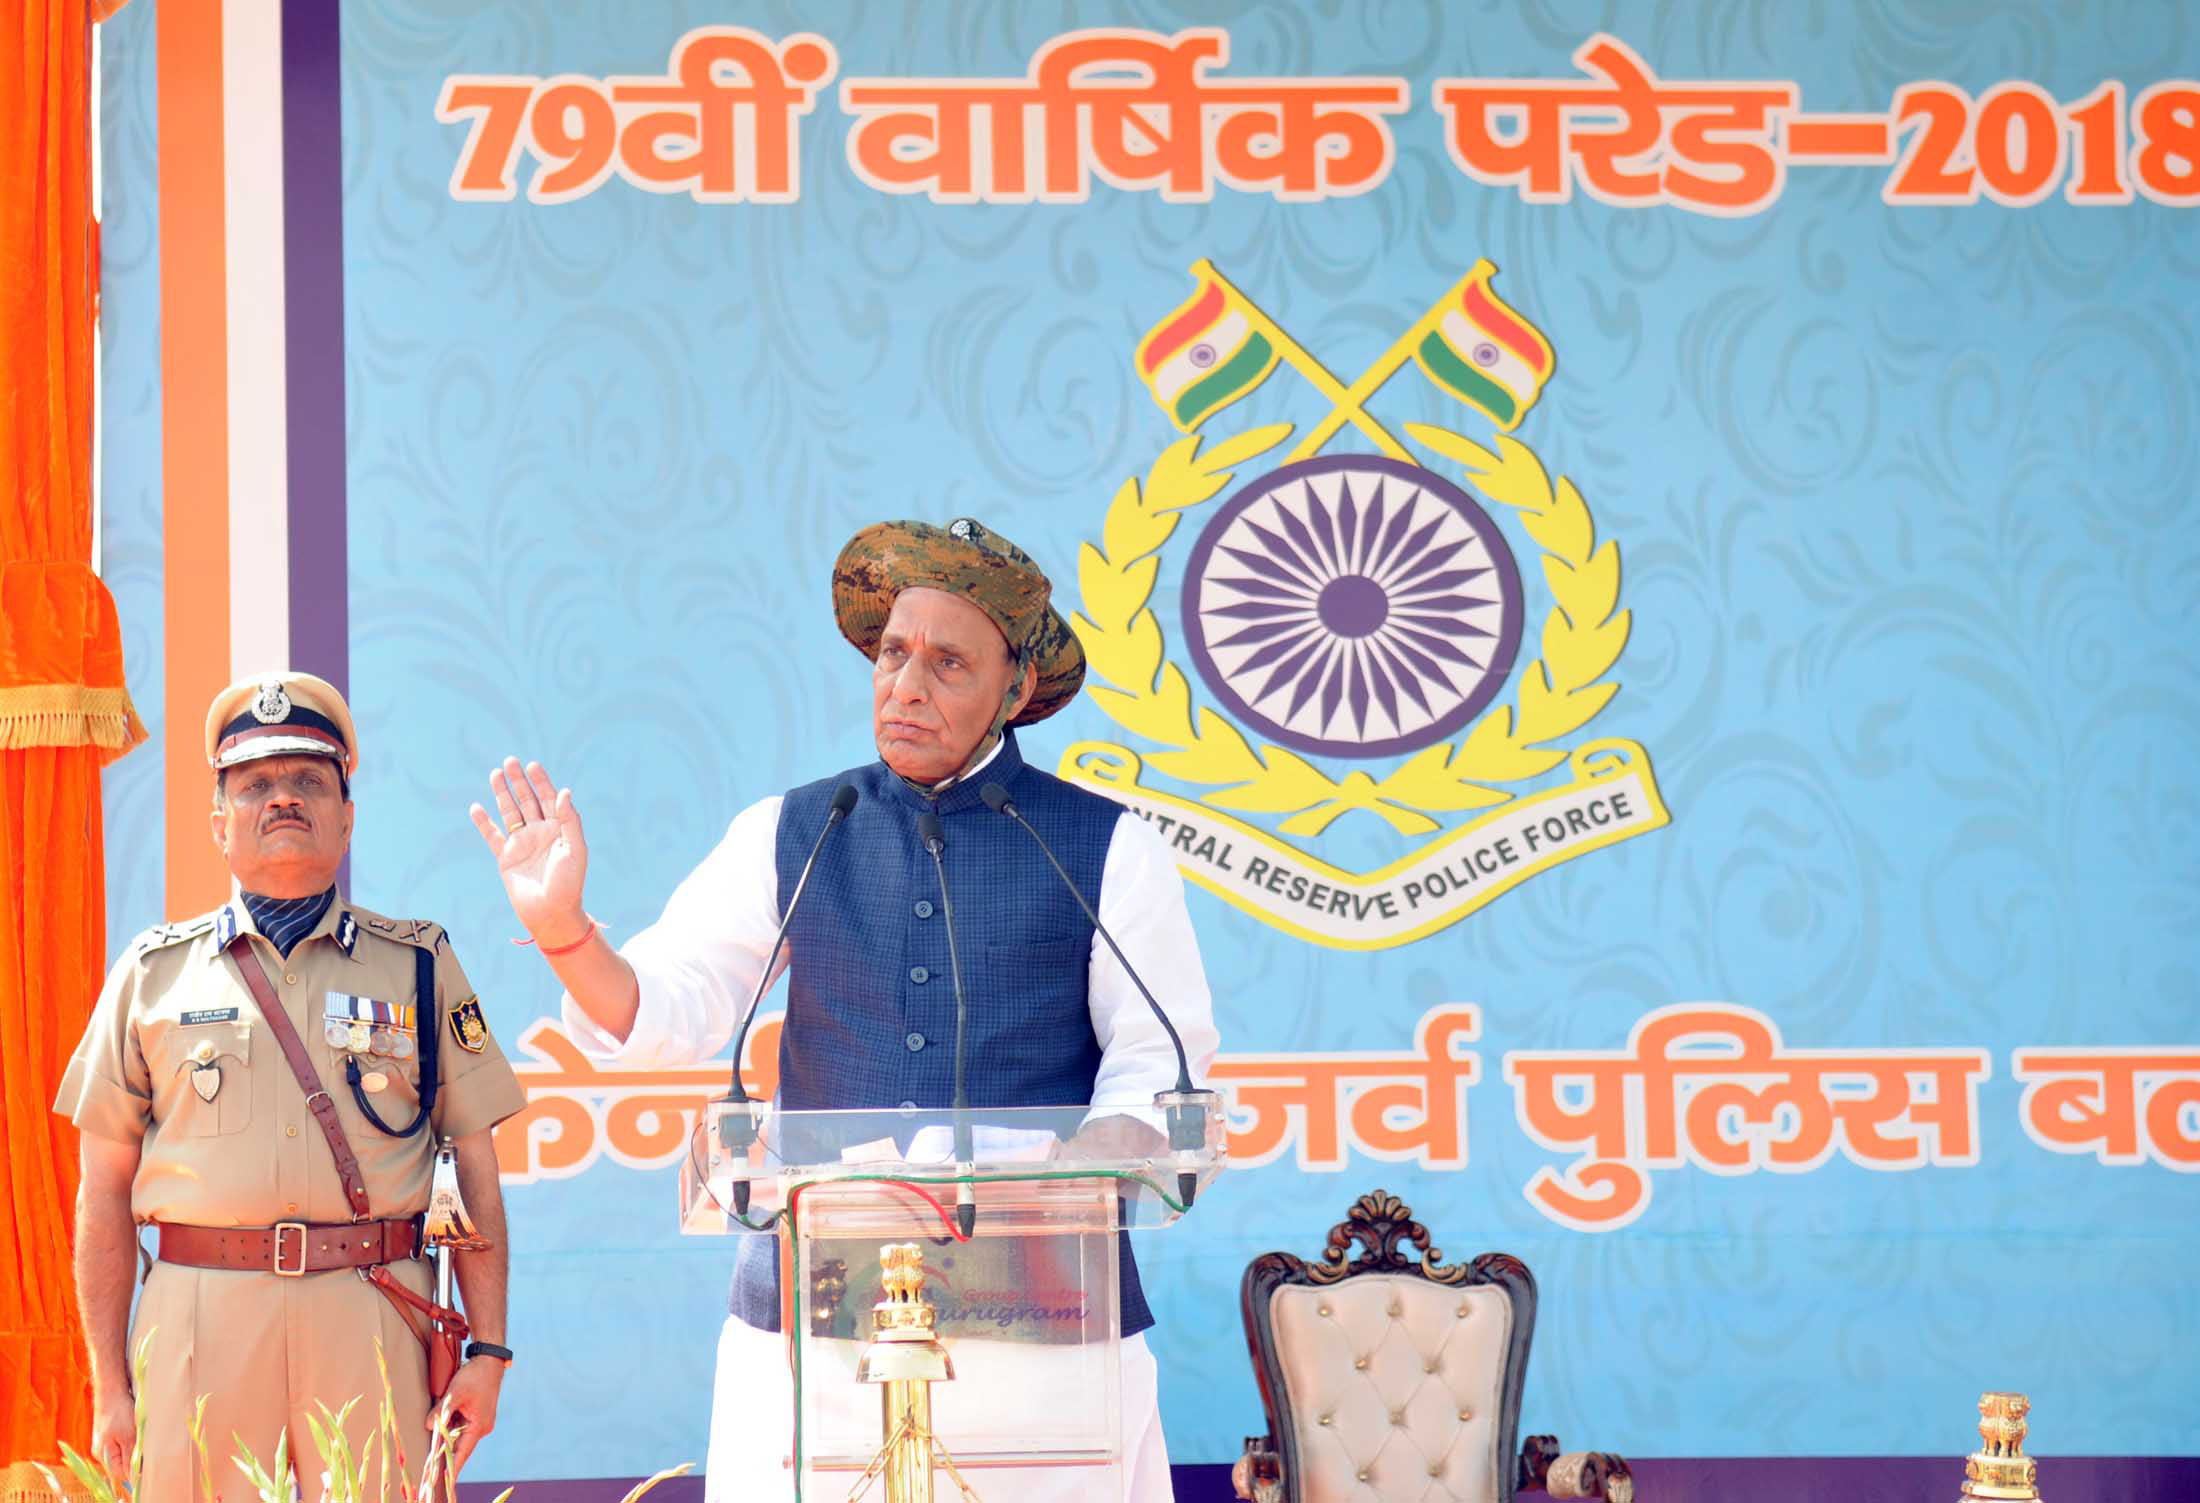 The Union Home Minister, Shri Rajnath Singh addressing at the CRPF's 79th Raising Day Parade function, in Gurugram, Haryana on March 24, 2018.